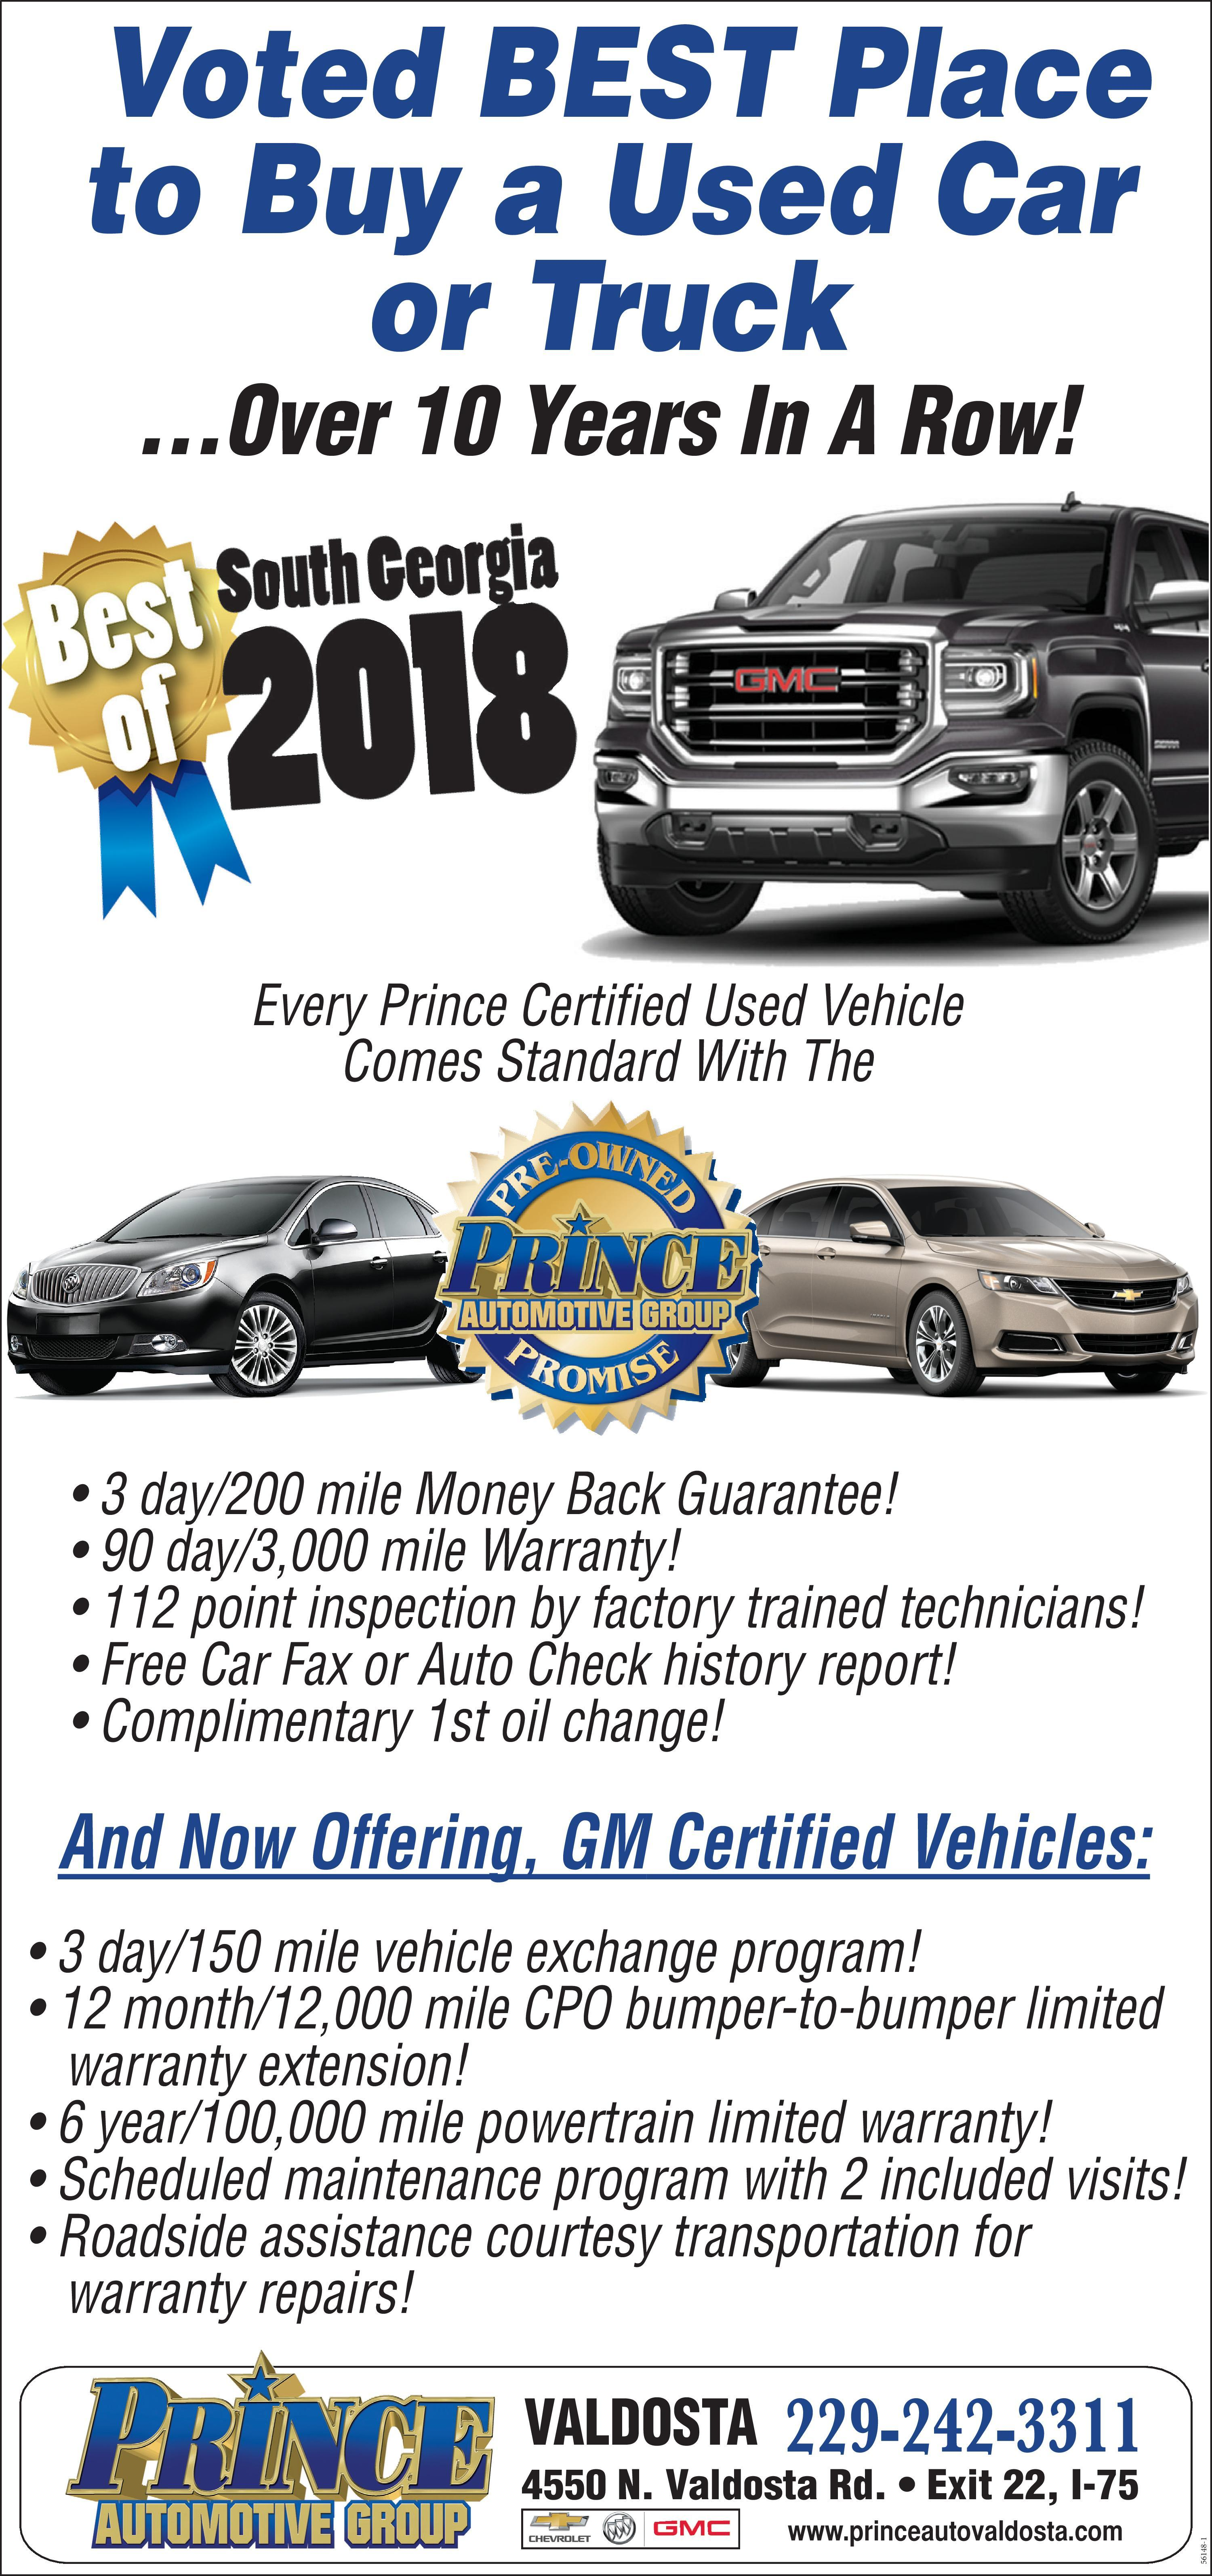 prince automotive group voted best place to a used car